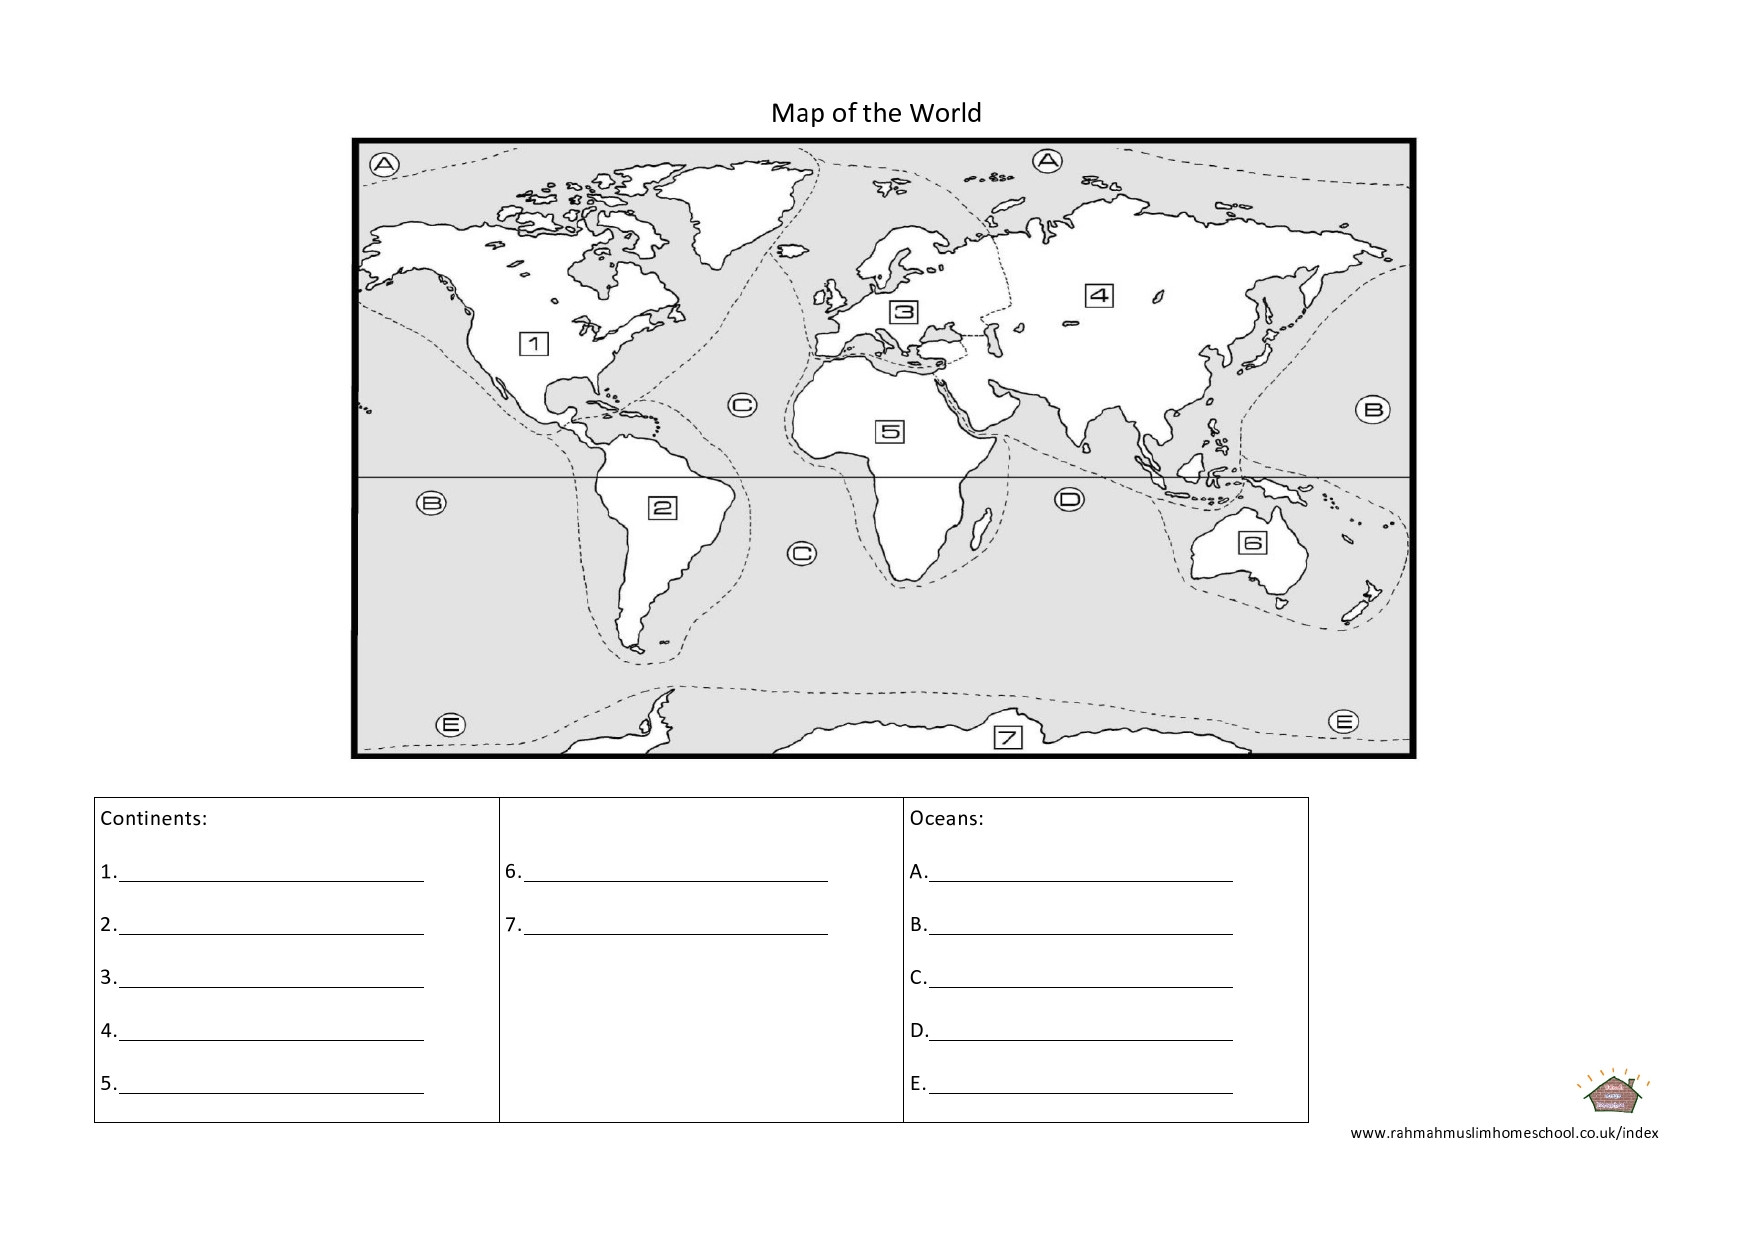 Continents and Oceans Printable Worksheets Geography Continents and Oceans Worksheet